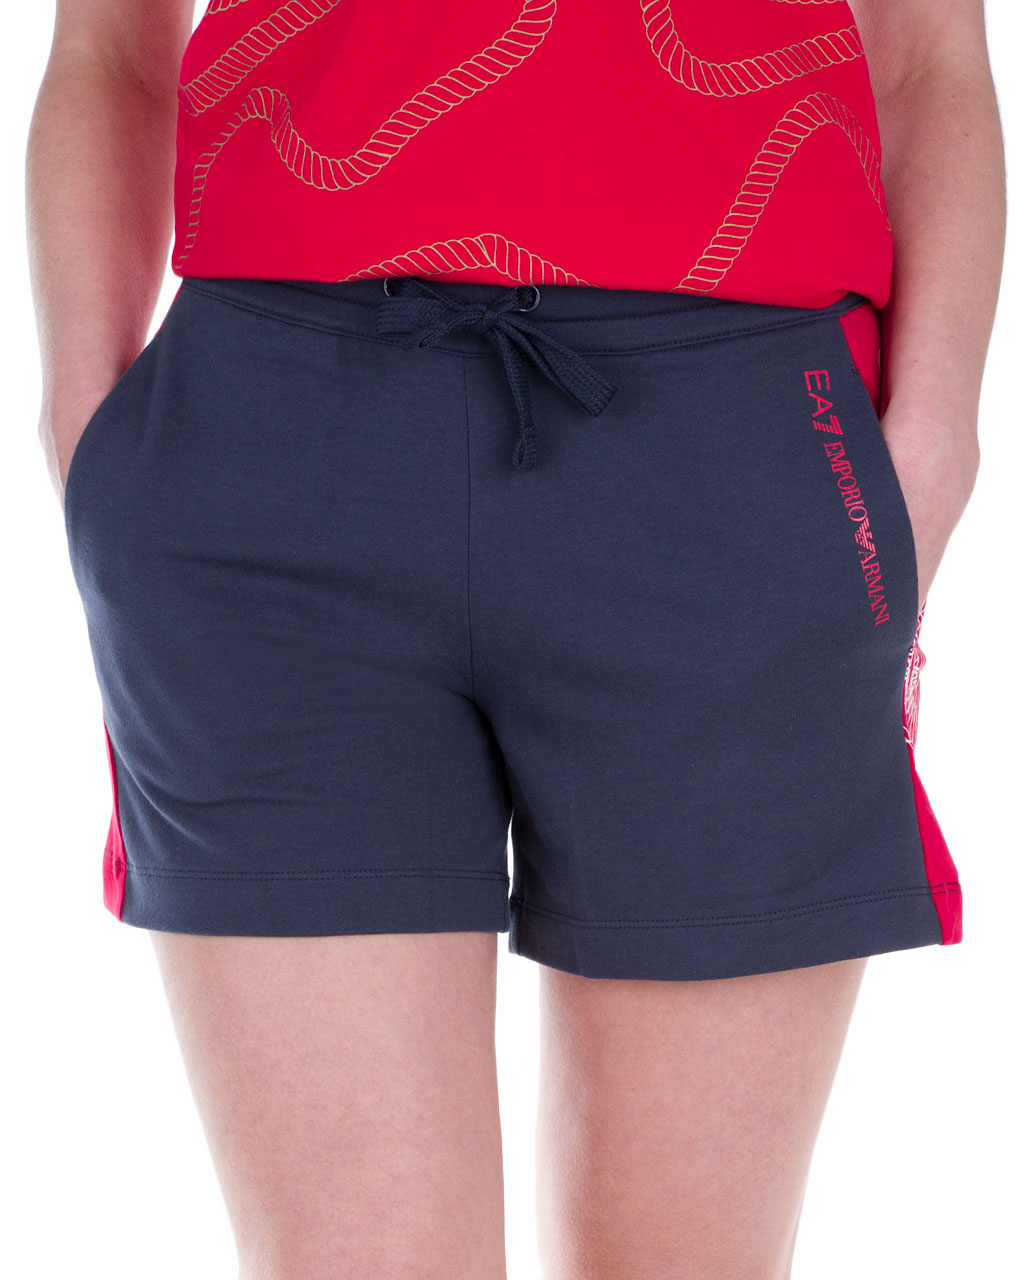 Women's sports shorts 3GTS55-TN31Z-1554/91 (1)